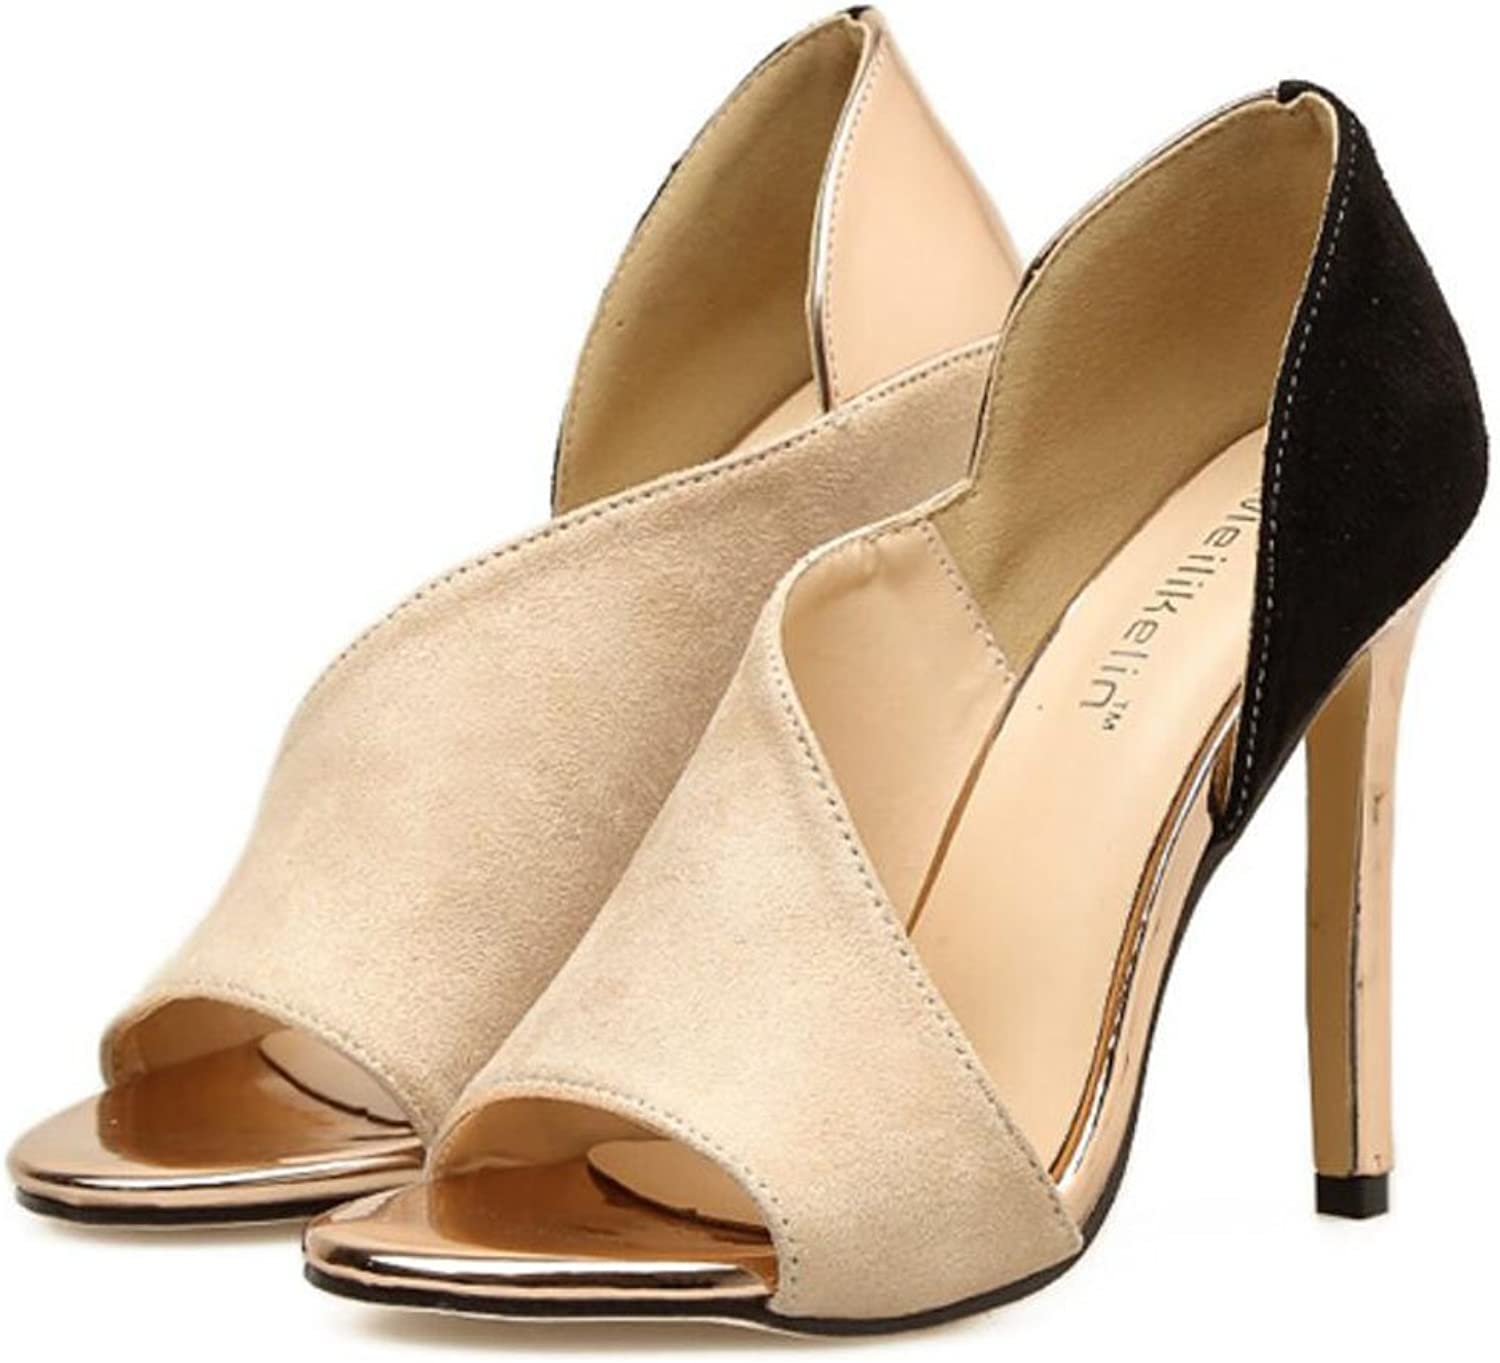 LZWSMGS Women's Peep Toe Suede High Heels Summer Fashion Hollow High Heels High Heels Sandals Court shoes Pump Large Size Ladies Sandals (color   Apricot, Size   6 US)